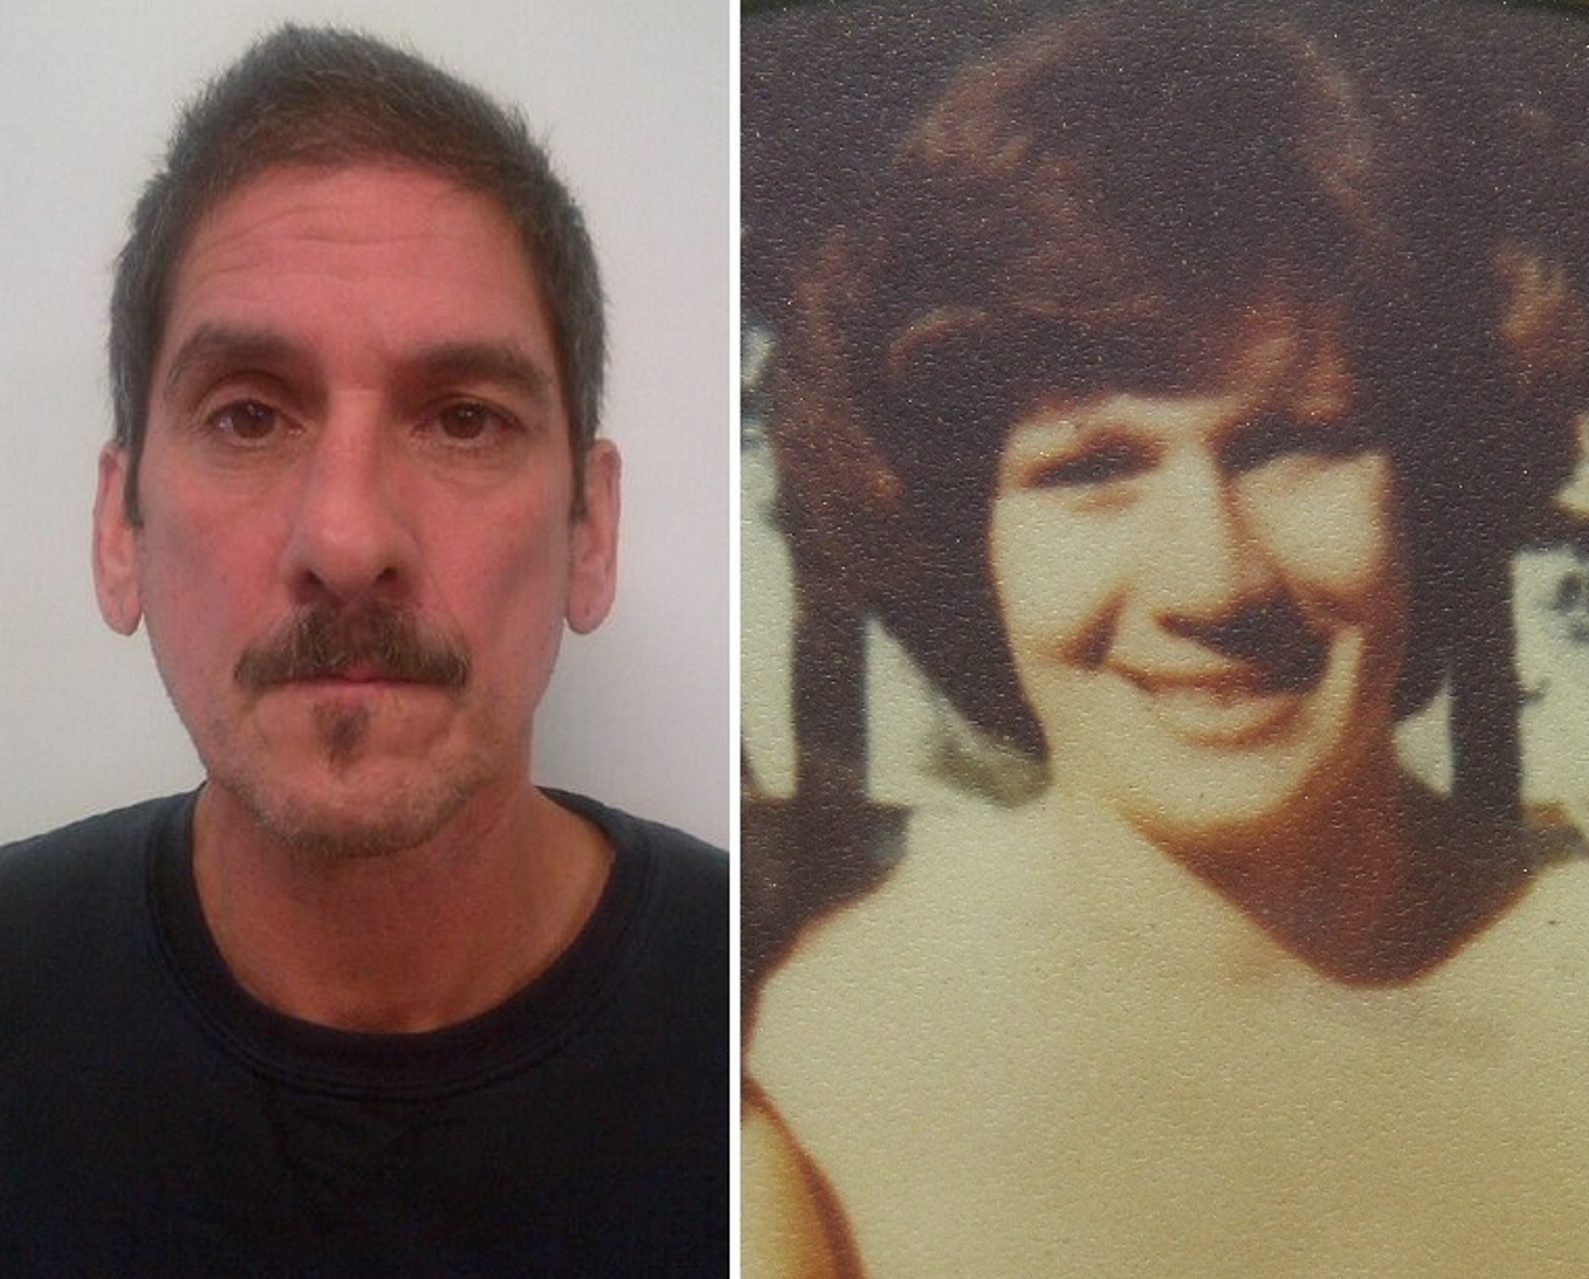 Michael Rodriguez, 60, left, was indicted in November in the 'cold case' slaying of Patricia Rodriguez, right, who was 21 at the time of her death in 1979.